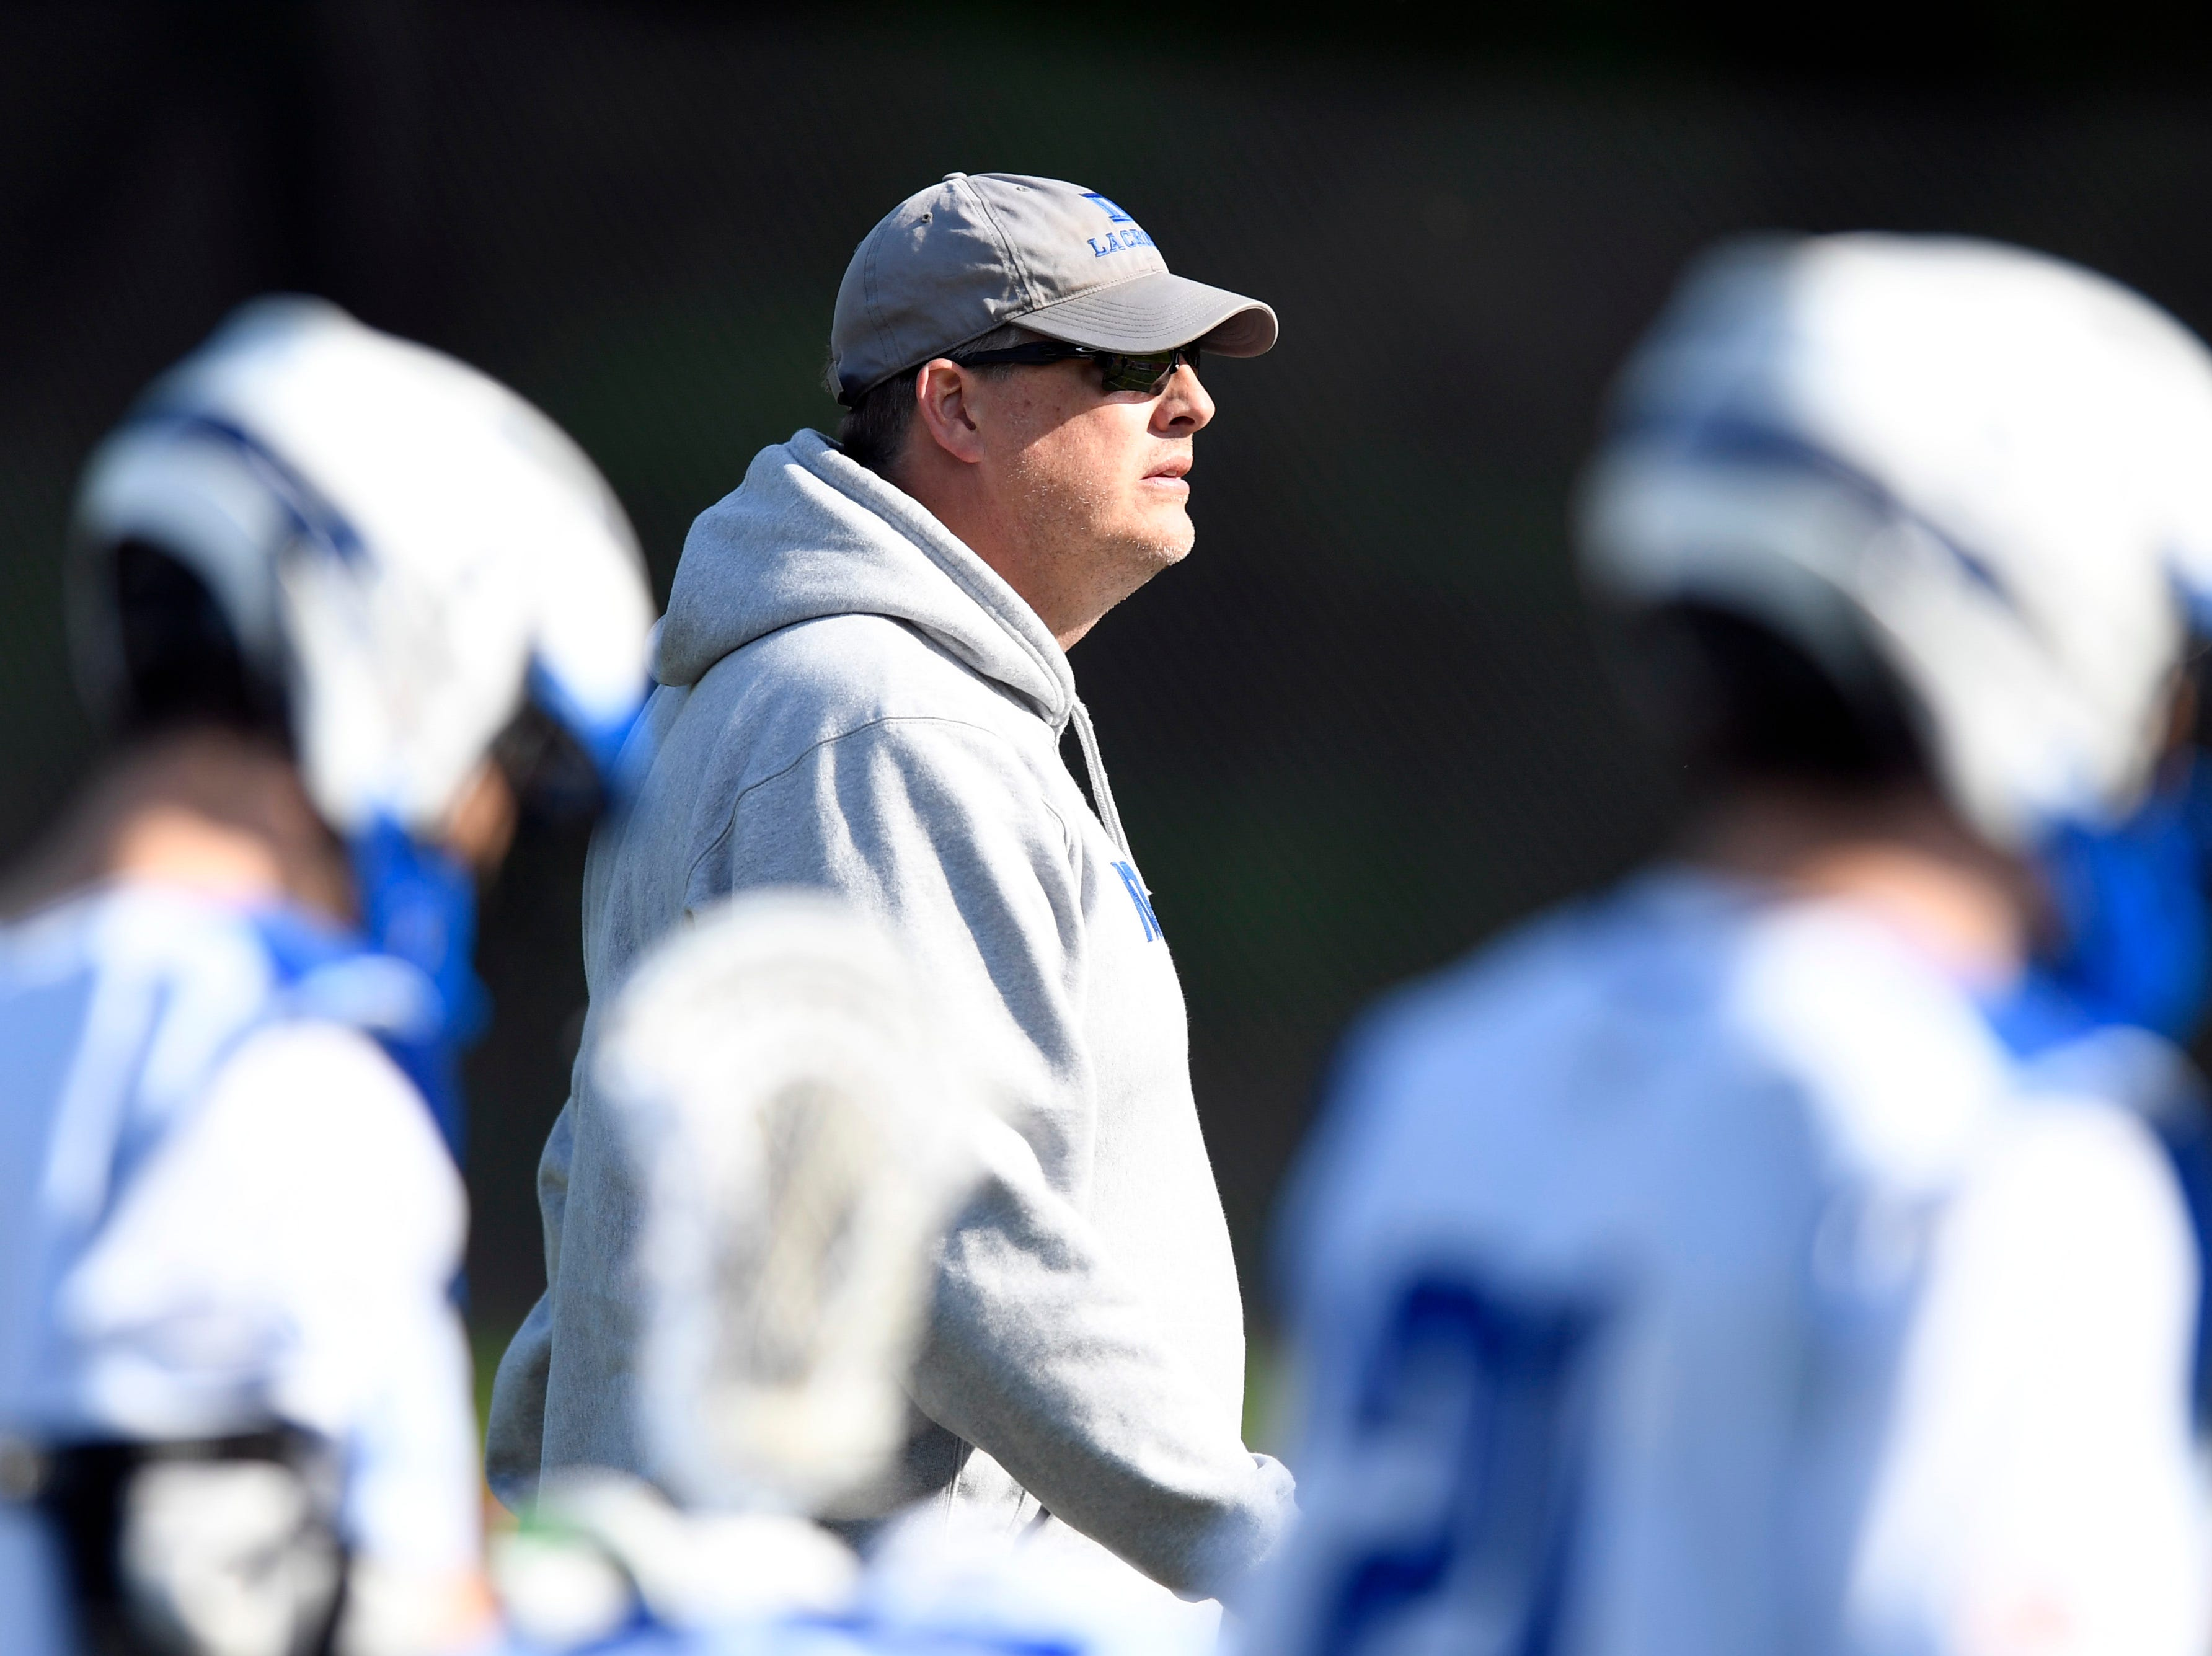 Demarest head coach Tony Mottola seen during a timeout. Northern Valley Demarest defeated Lakeland 6-3 in the first round of the North Group 2 boys lacrosse tournament on Wednesday, May 15, 2019 in Demarest, NJ.